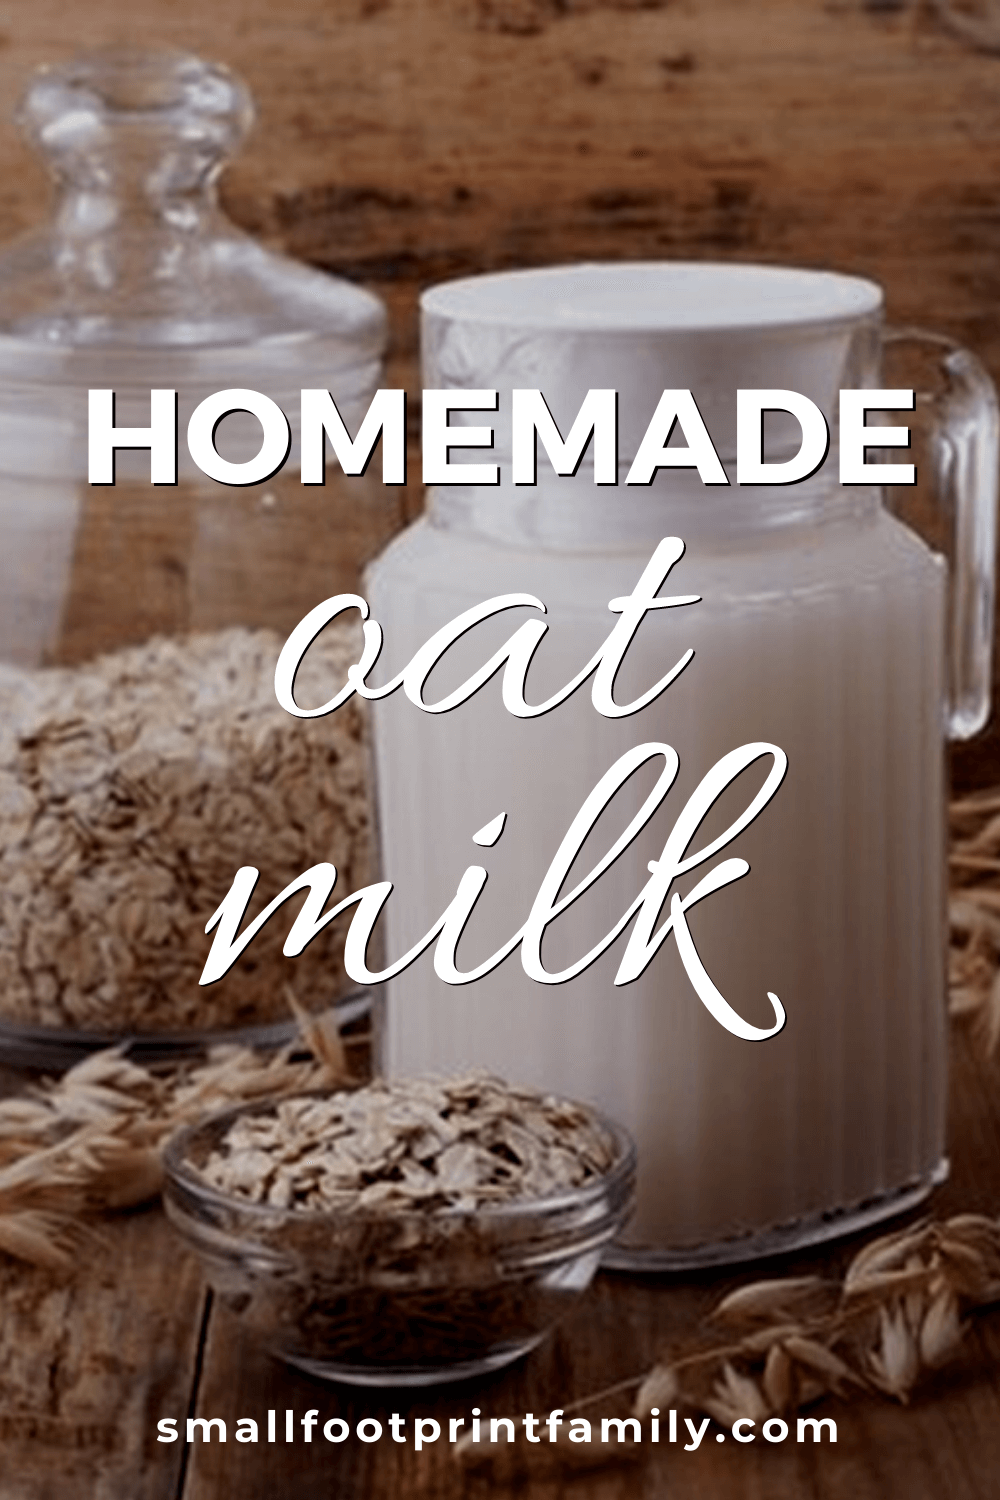 Oat milk is a delicious, eco-friendly alternative to other non-dairy milks, and is quick, cheap and easy to make. It also has an alkaline creaminess that makes it arguably the best-tasting non-dairy creamer available. Here's how to make it.#recipes #oatmilk #vegan #rawvegan #paleo #paleodiet #beverages #nondairy #glutenfree #dairyfree #mylk